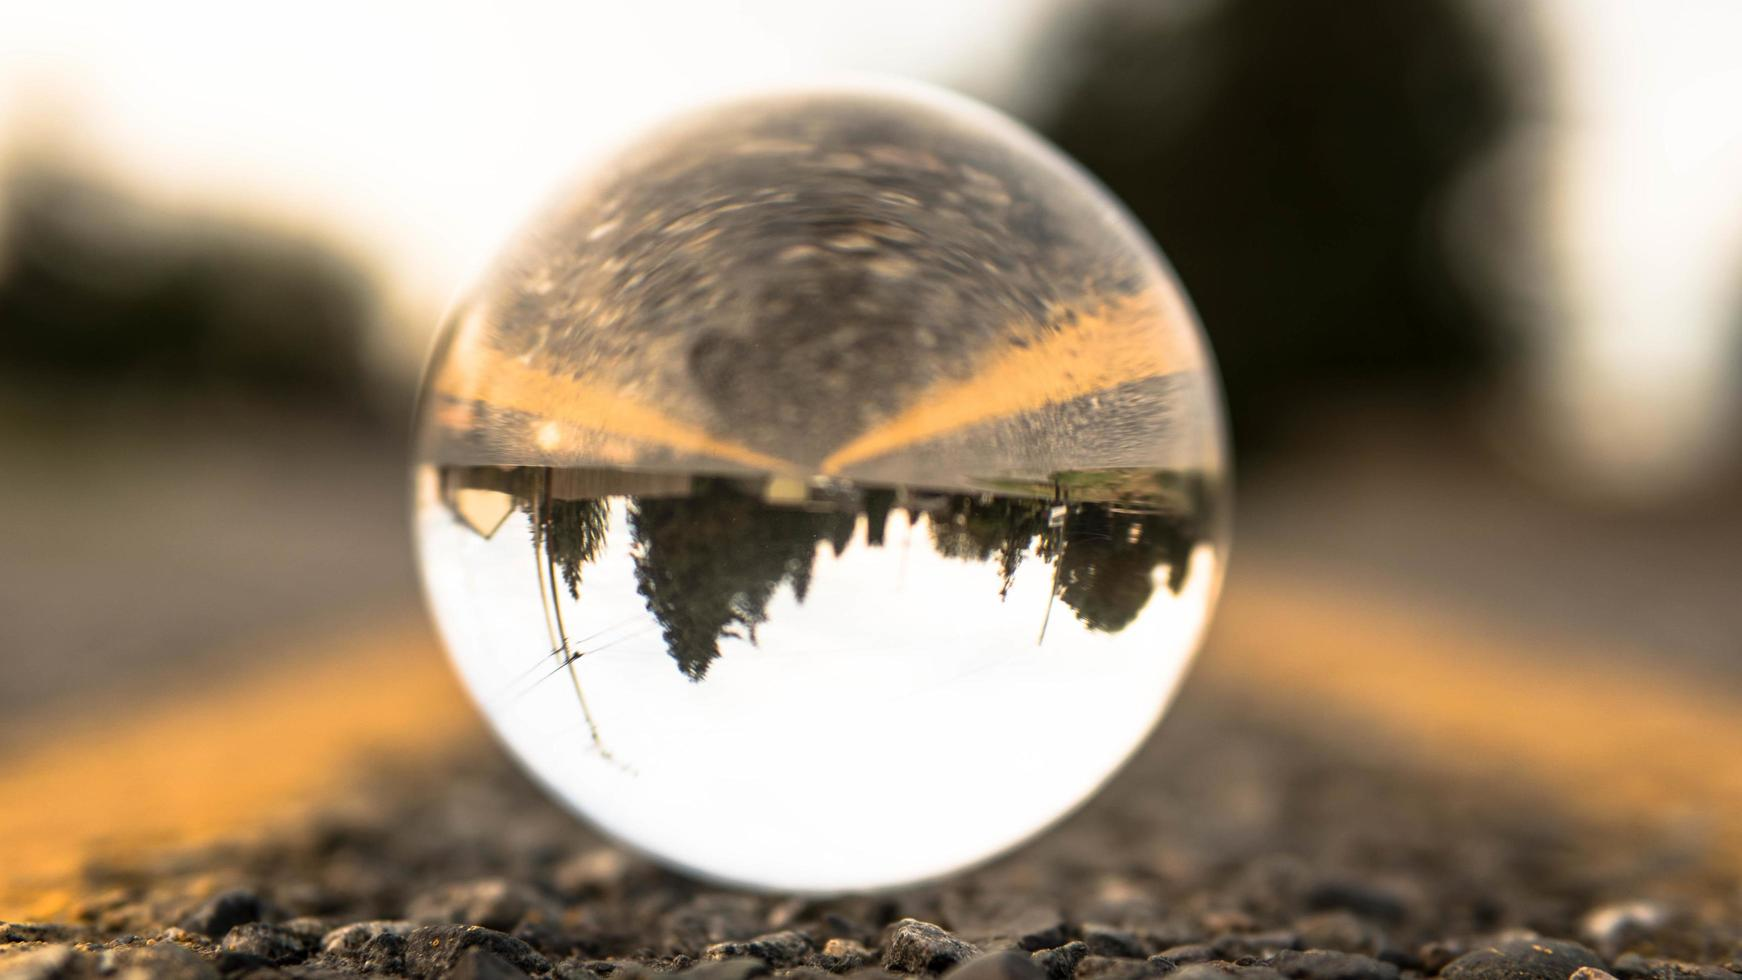 Glass ball on road during daytime photo